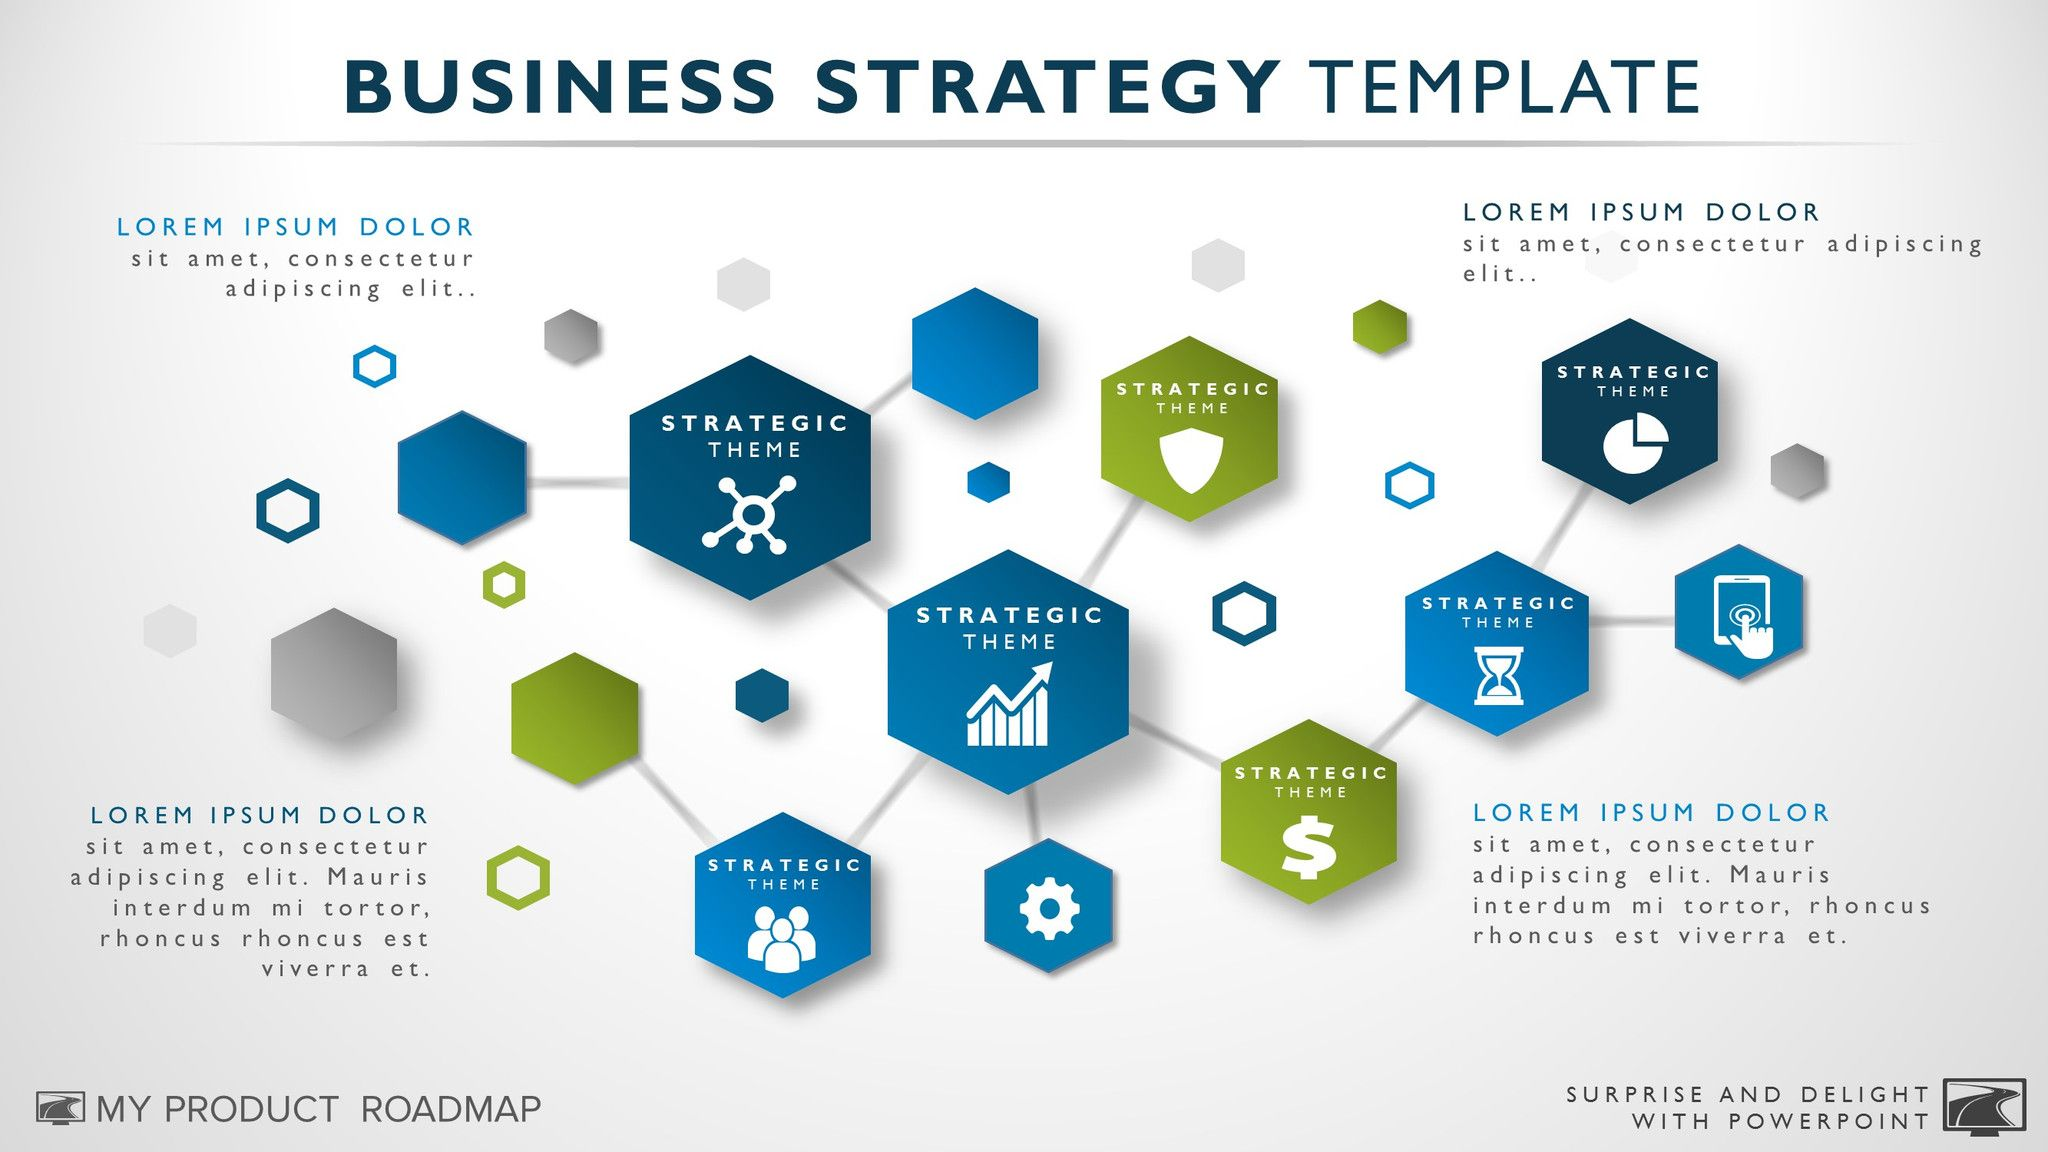 Business strategy template strategy templates pinterest template template business strategy template presentationtemplates cheaphphosting Images